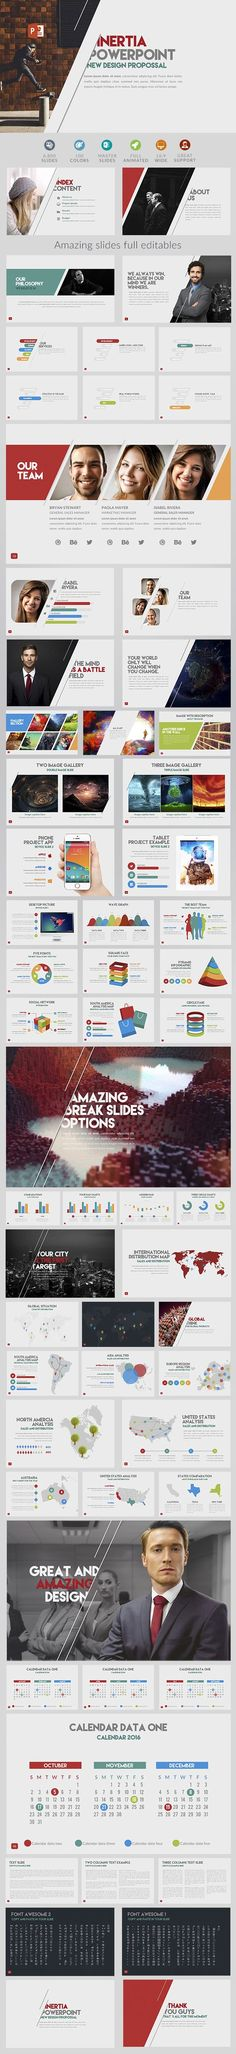 IVO Powerpoint Template Design, Business and Business powerpoint